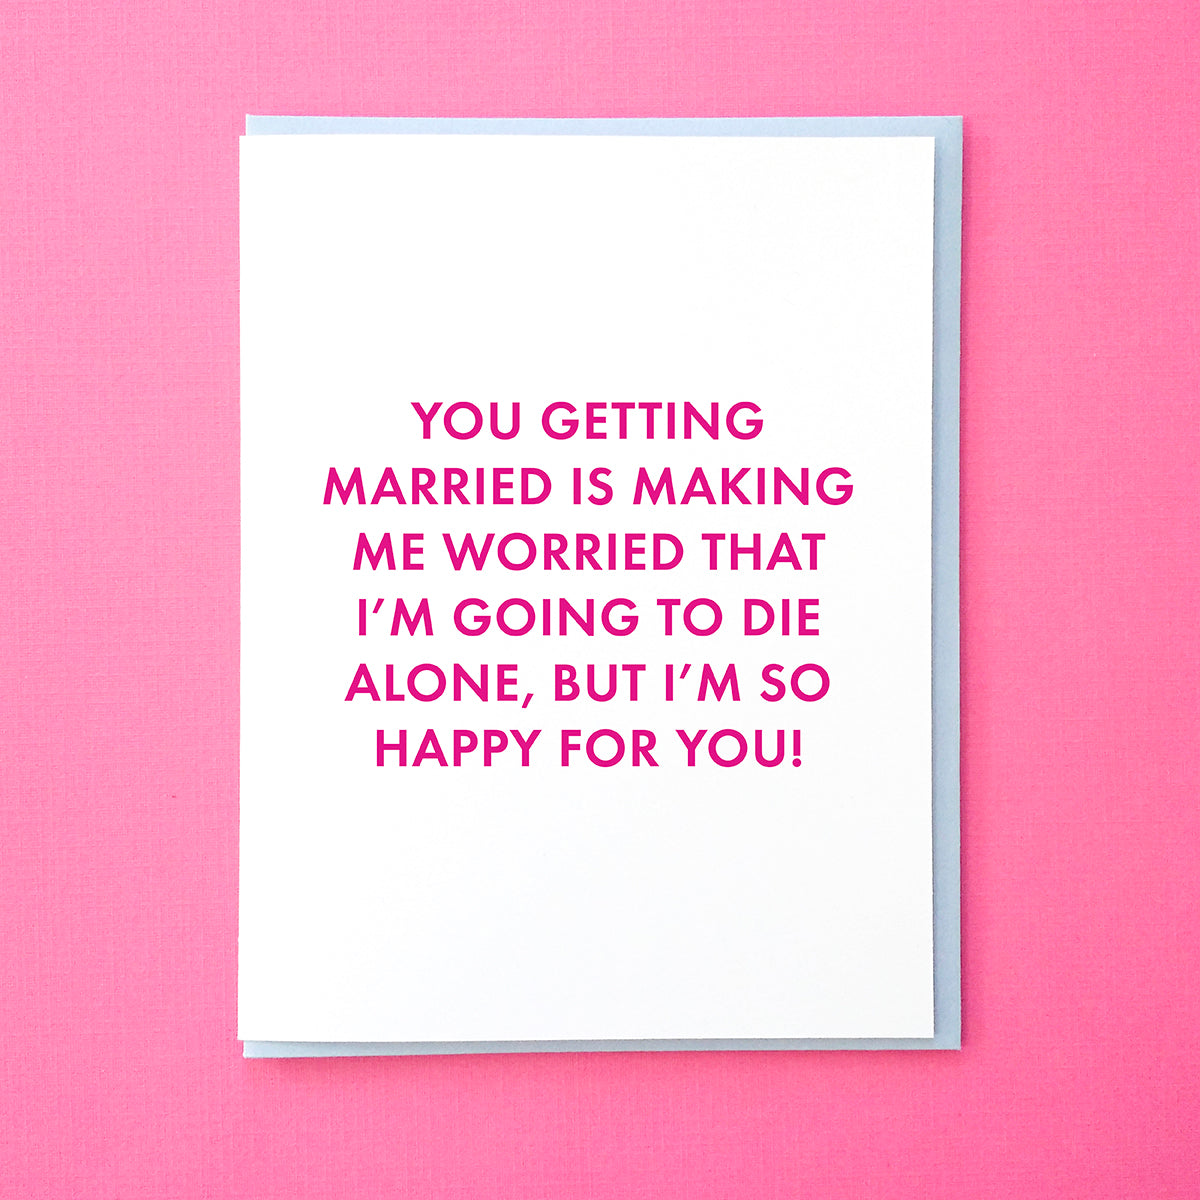 You getting married is making me worried that I'm going to die alone, but I'm so happy for you! Best Friend Wedding Card. Best Friend Engagement Card. From Tick Tock Press